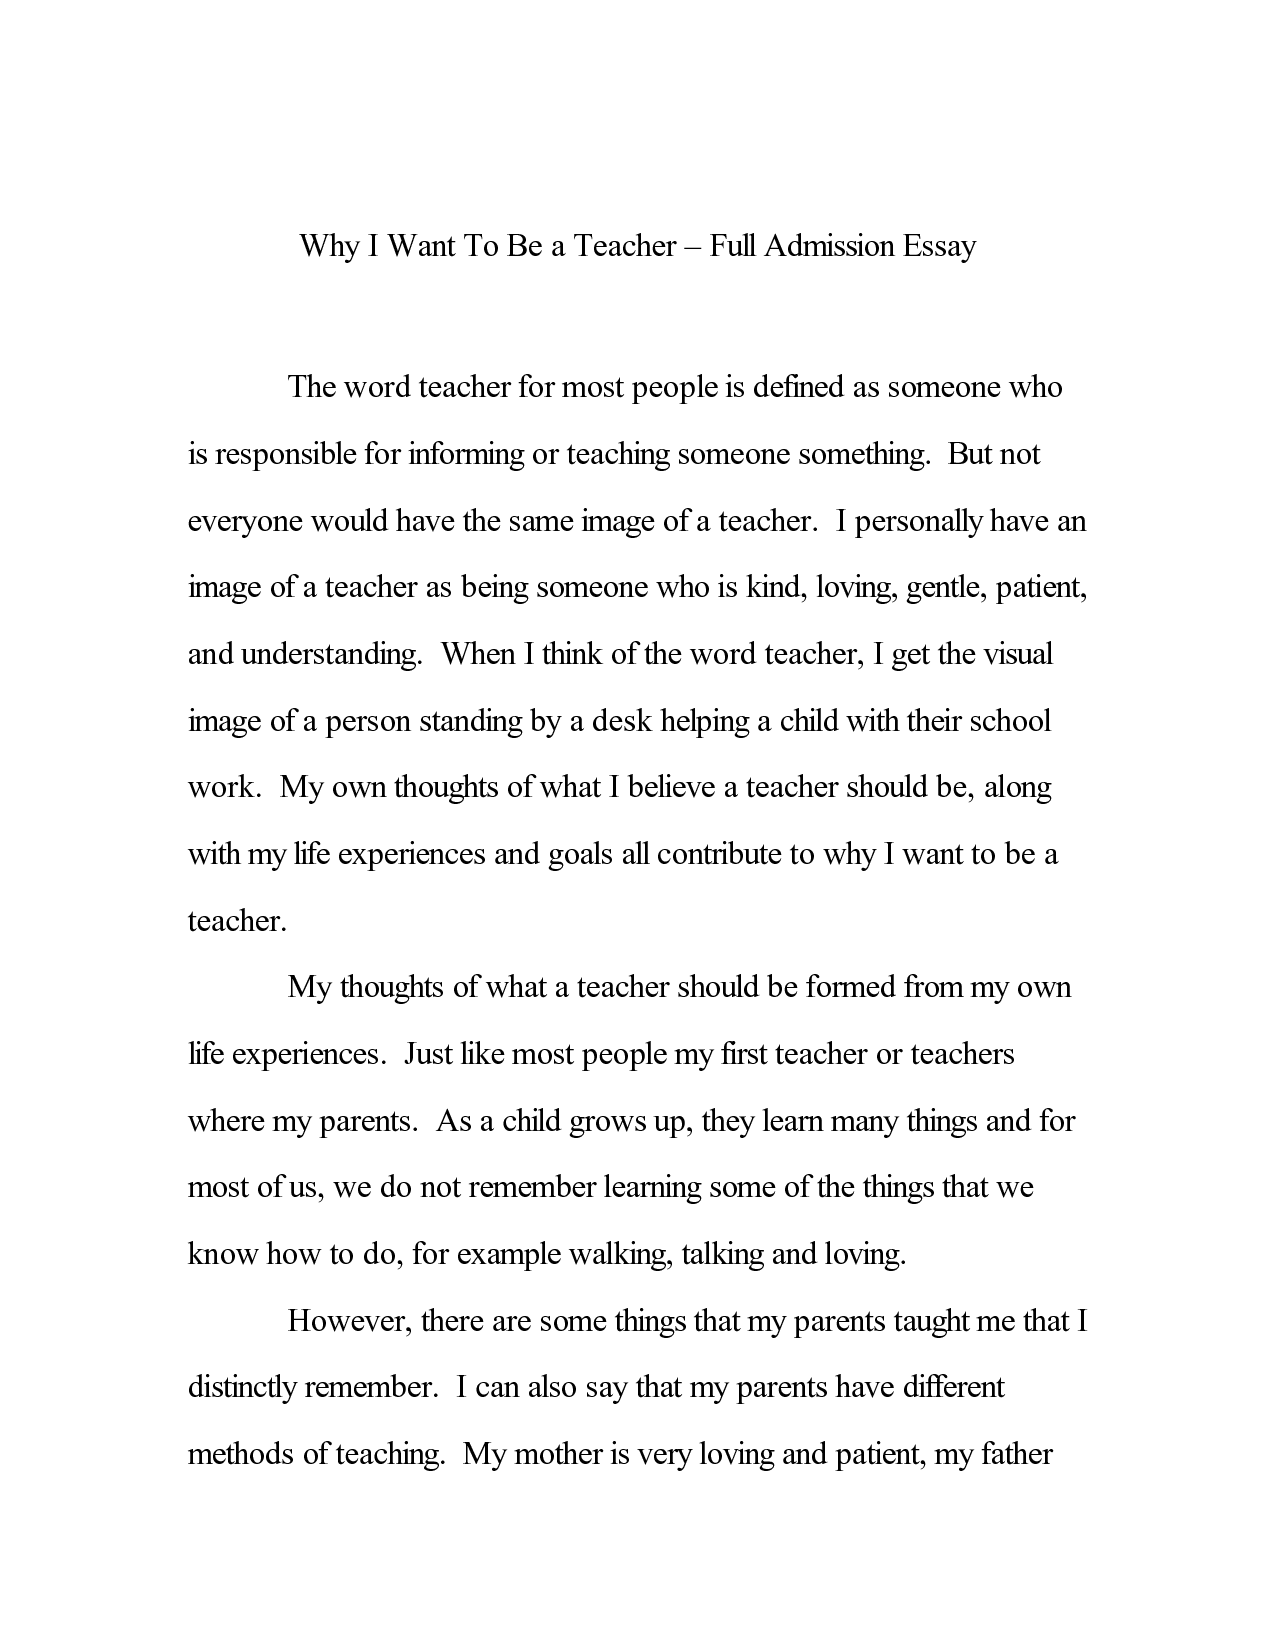 Application essay writing essay